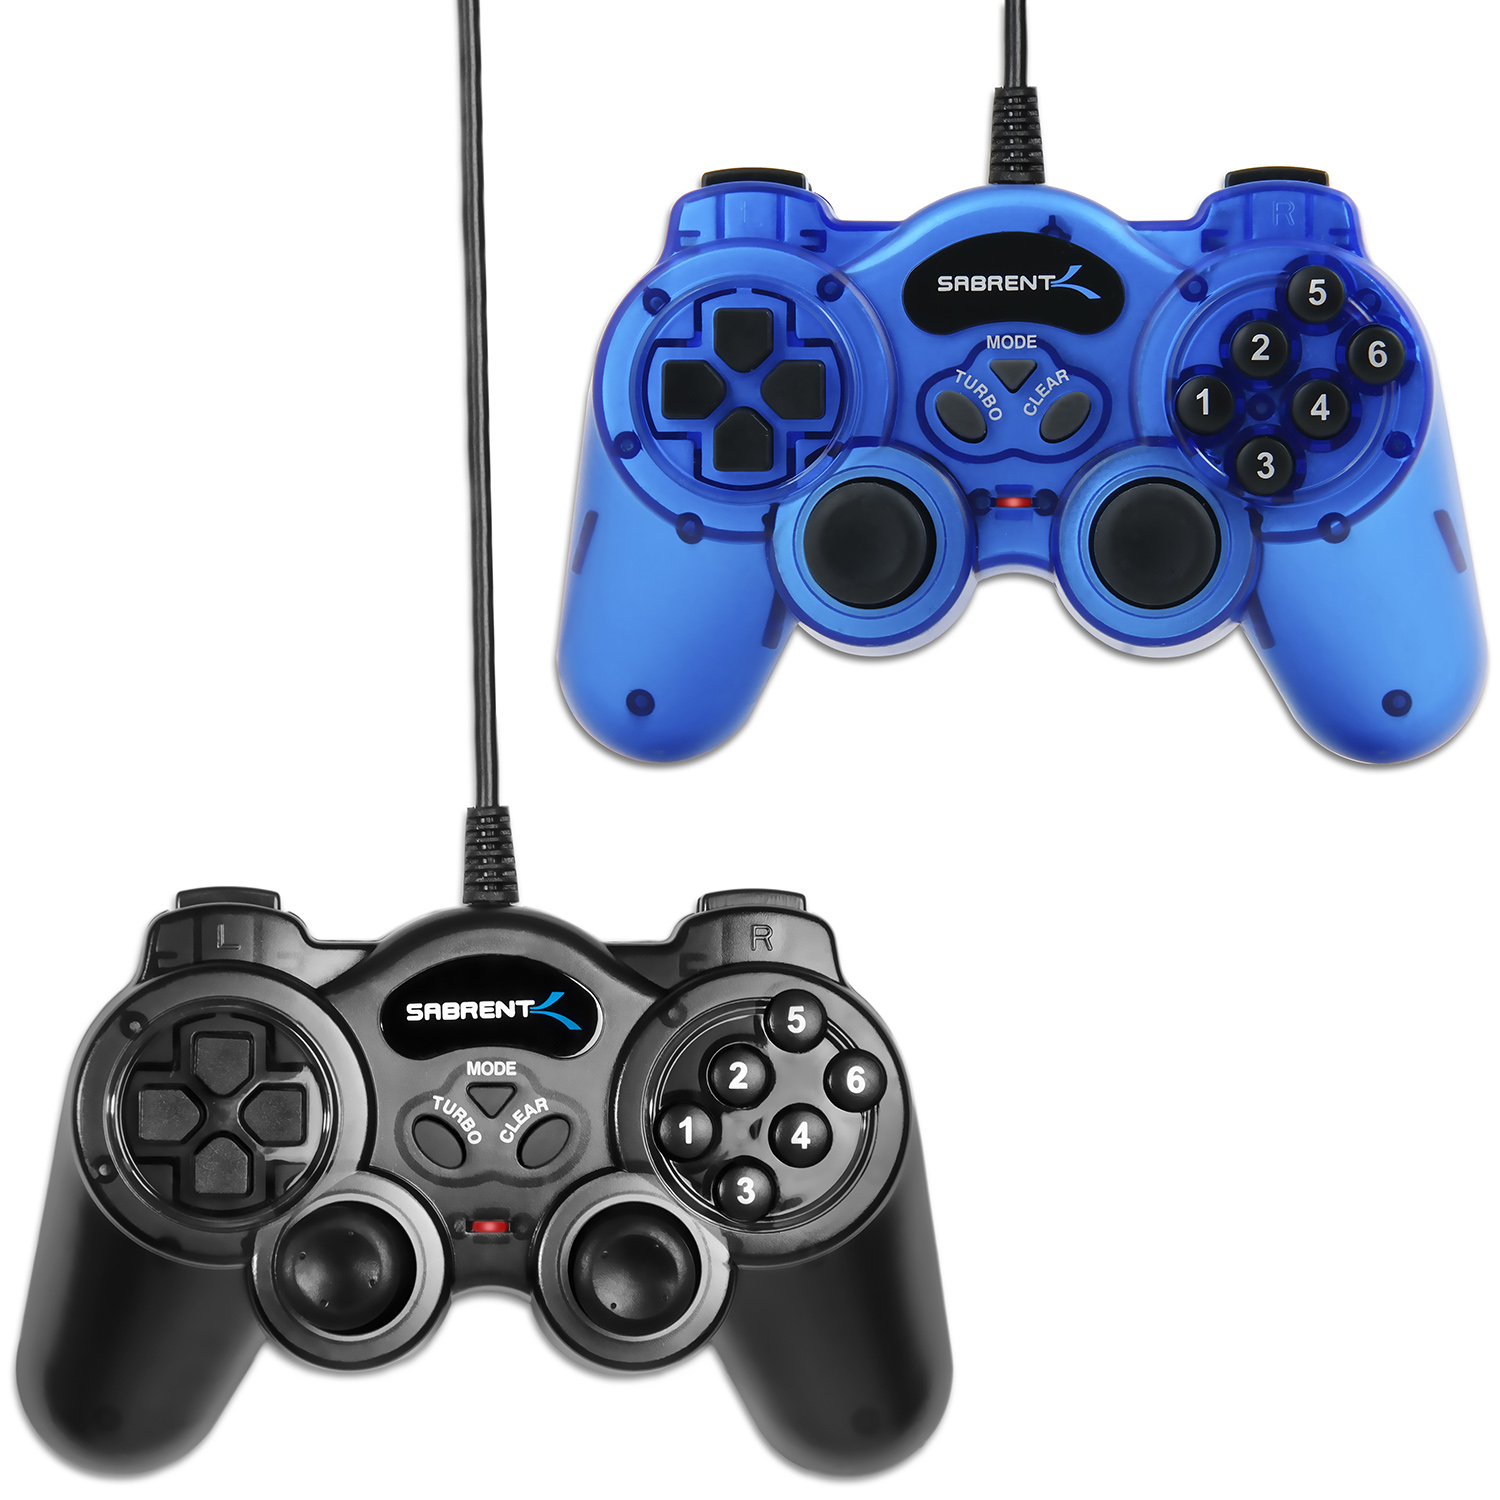 Sabrent 12-Button USB 2.0 PC Game Controller, 2pk